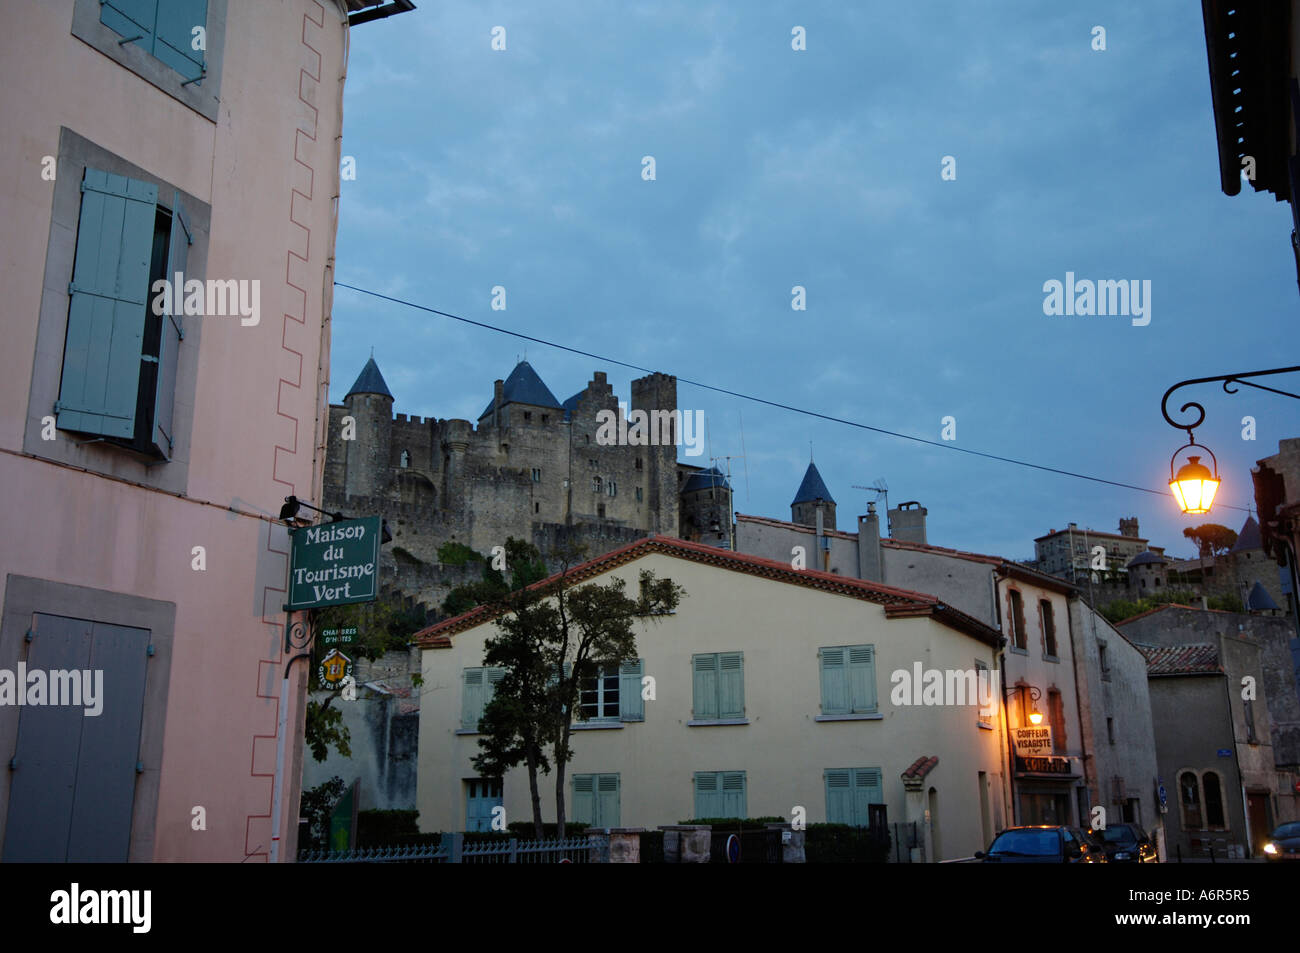 Carcassonne, medievial forteresse, ambiance du soir Photo Stock